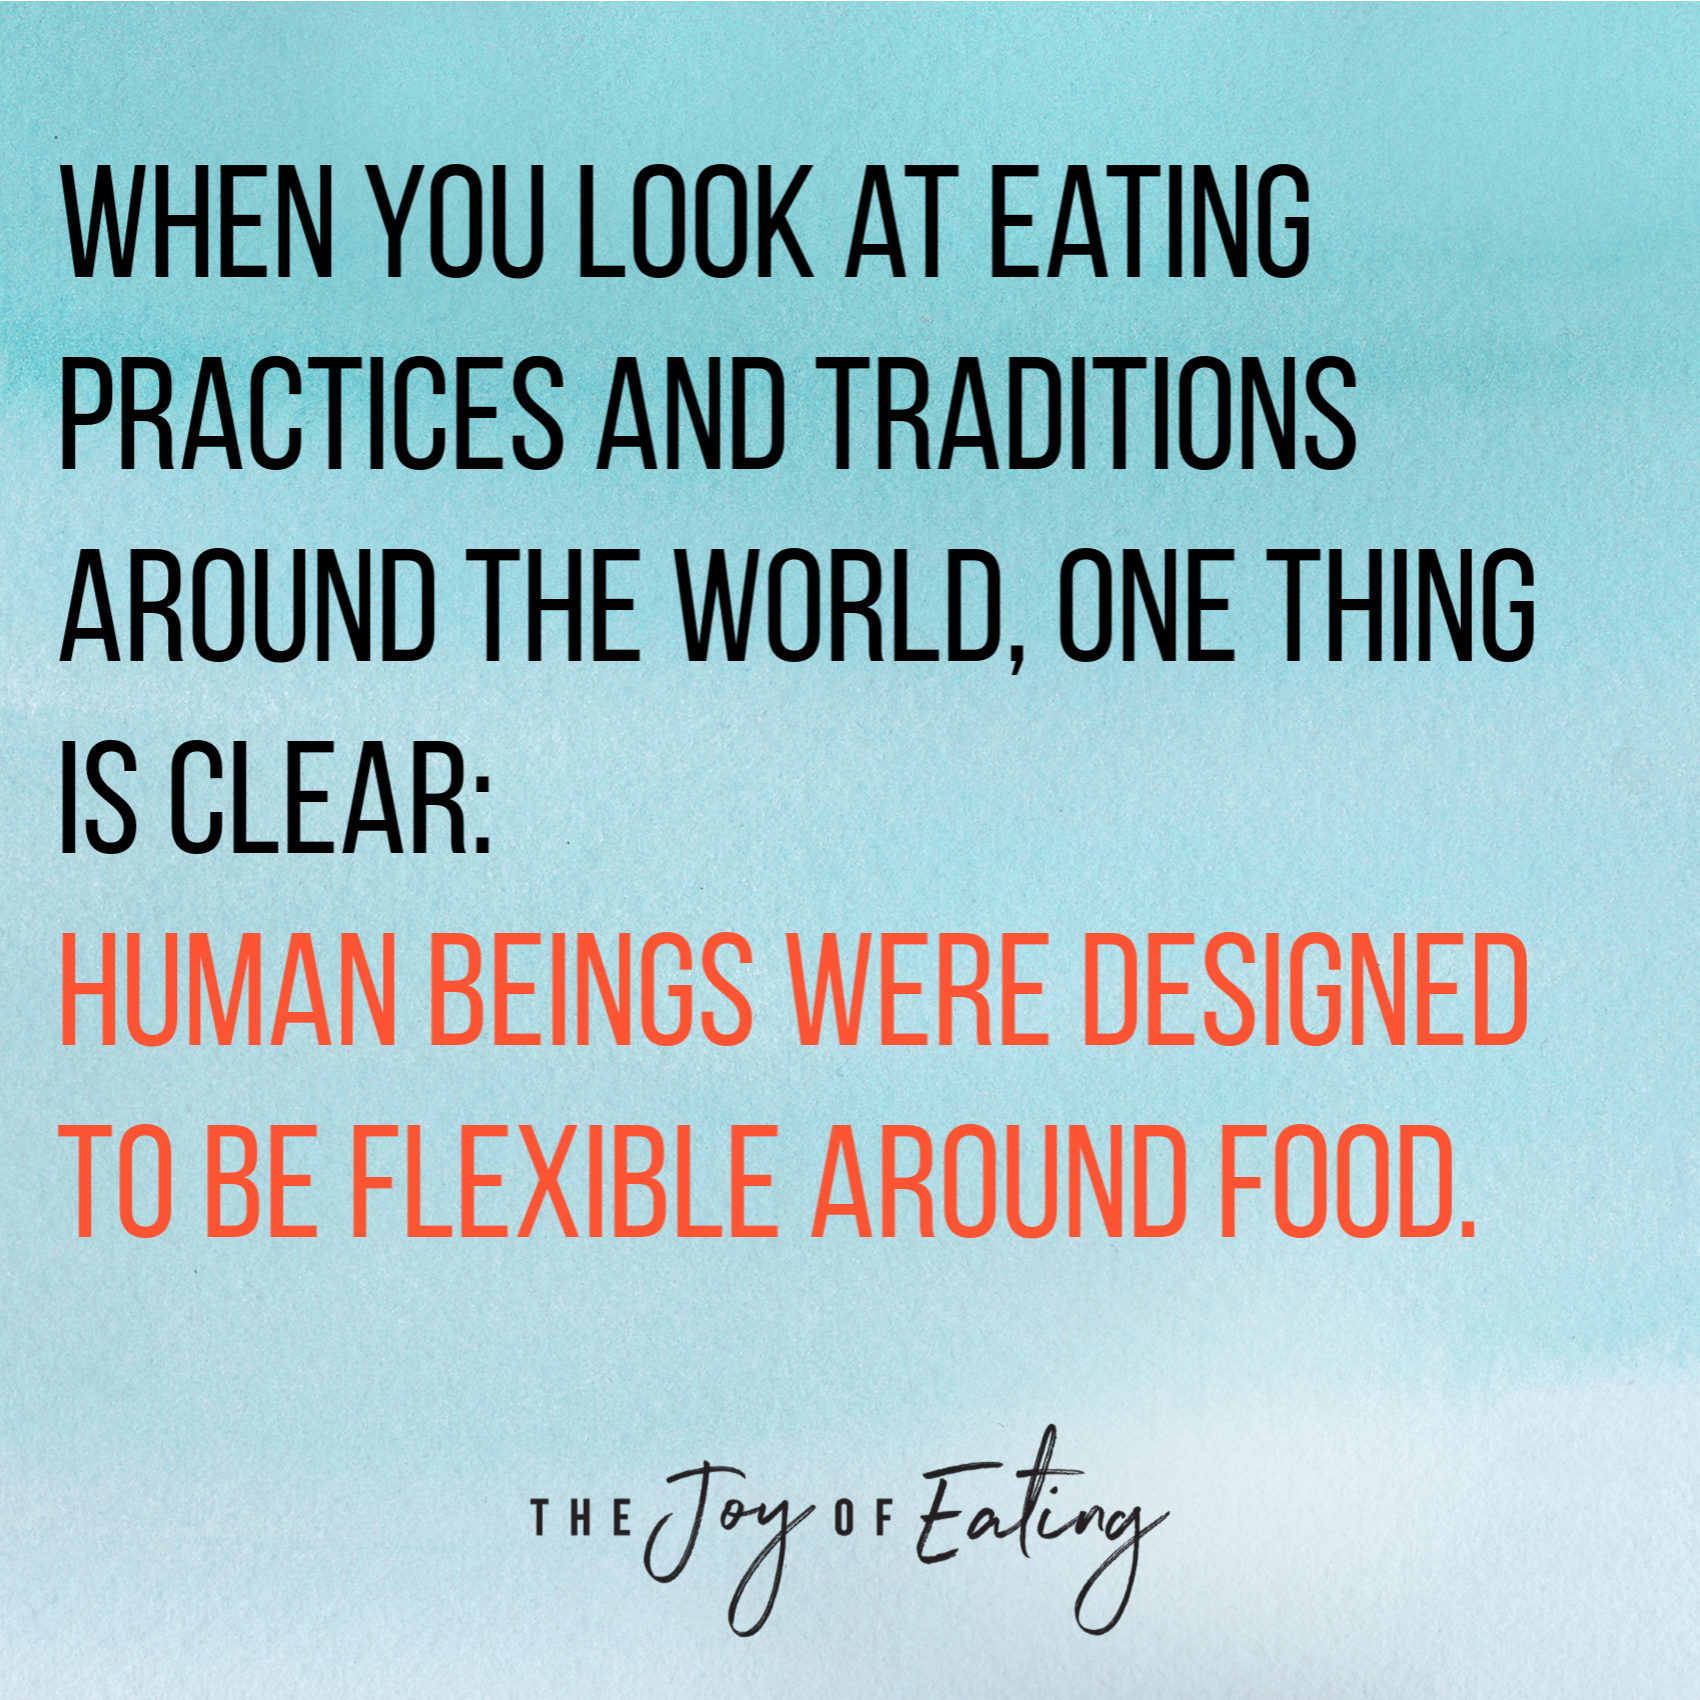 Human beings were designed to be flexible around food. #intuitiveeating #haes #bodypositive